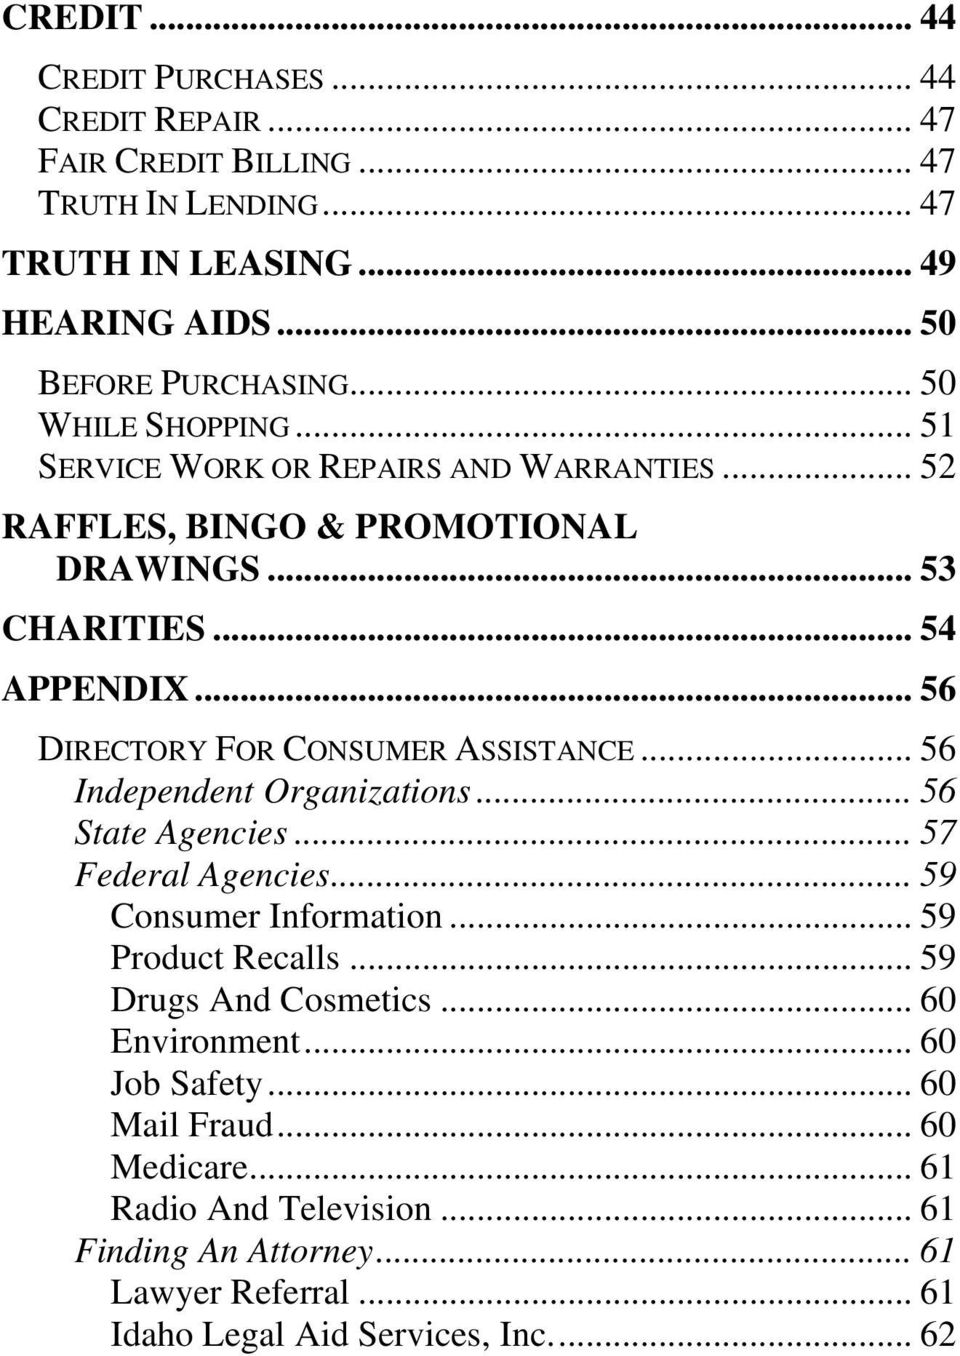 .. 56 DIRECTORY FOR CONSUMER ASSISTANCE... 56 Independent Organizations... 56 State Agencies... 57 Federal Agencies... 59 Consumer Information... 59 Product Recalls.